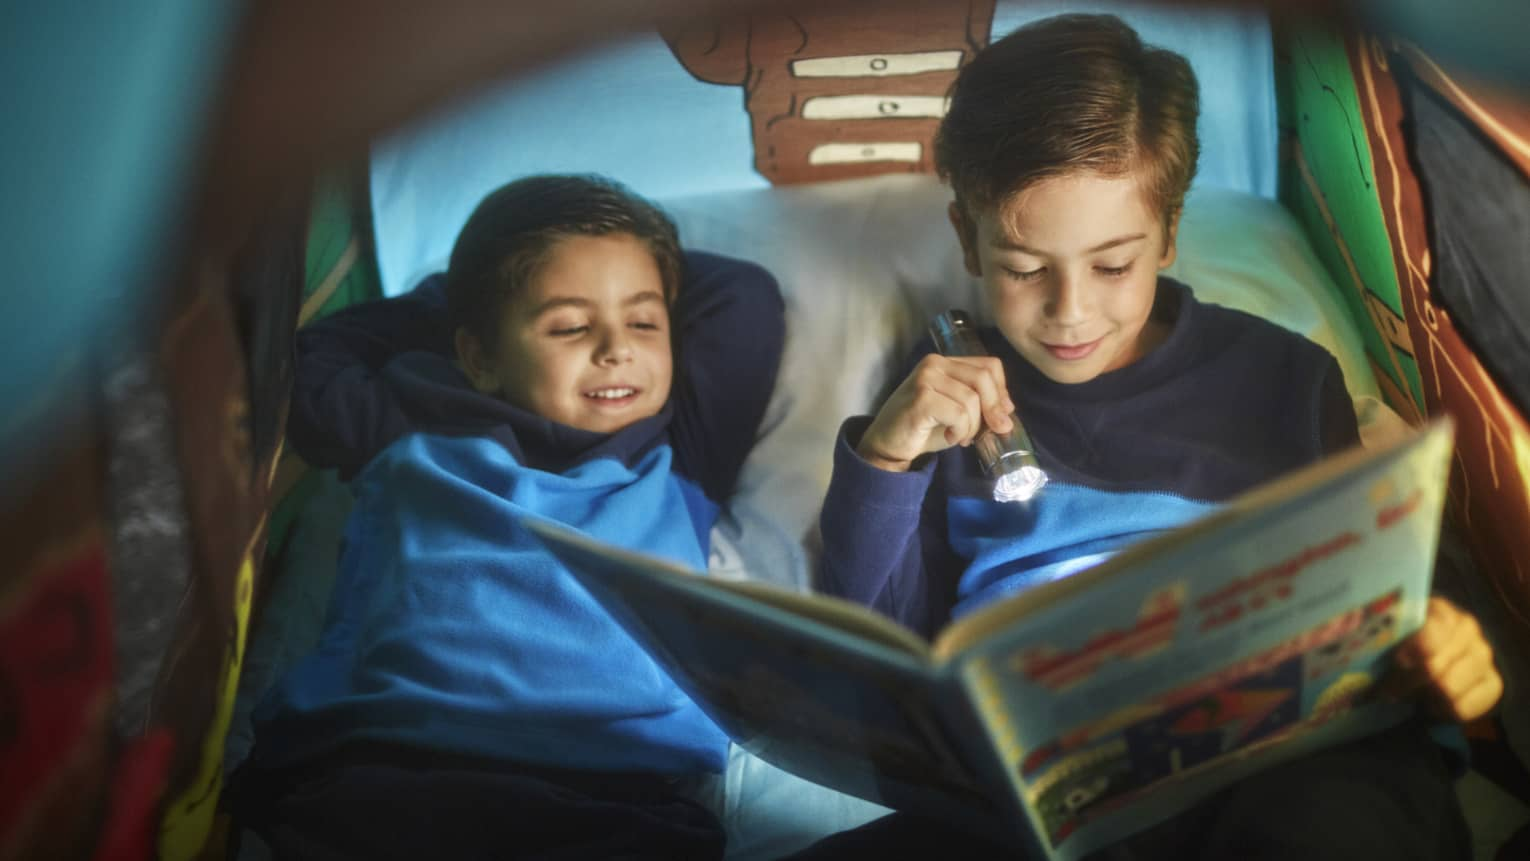 Two little boys in a kids' tent, reading a children's book by flashlight